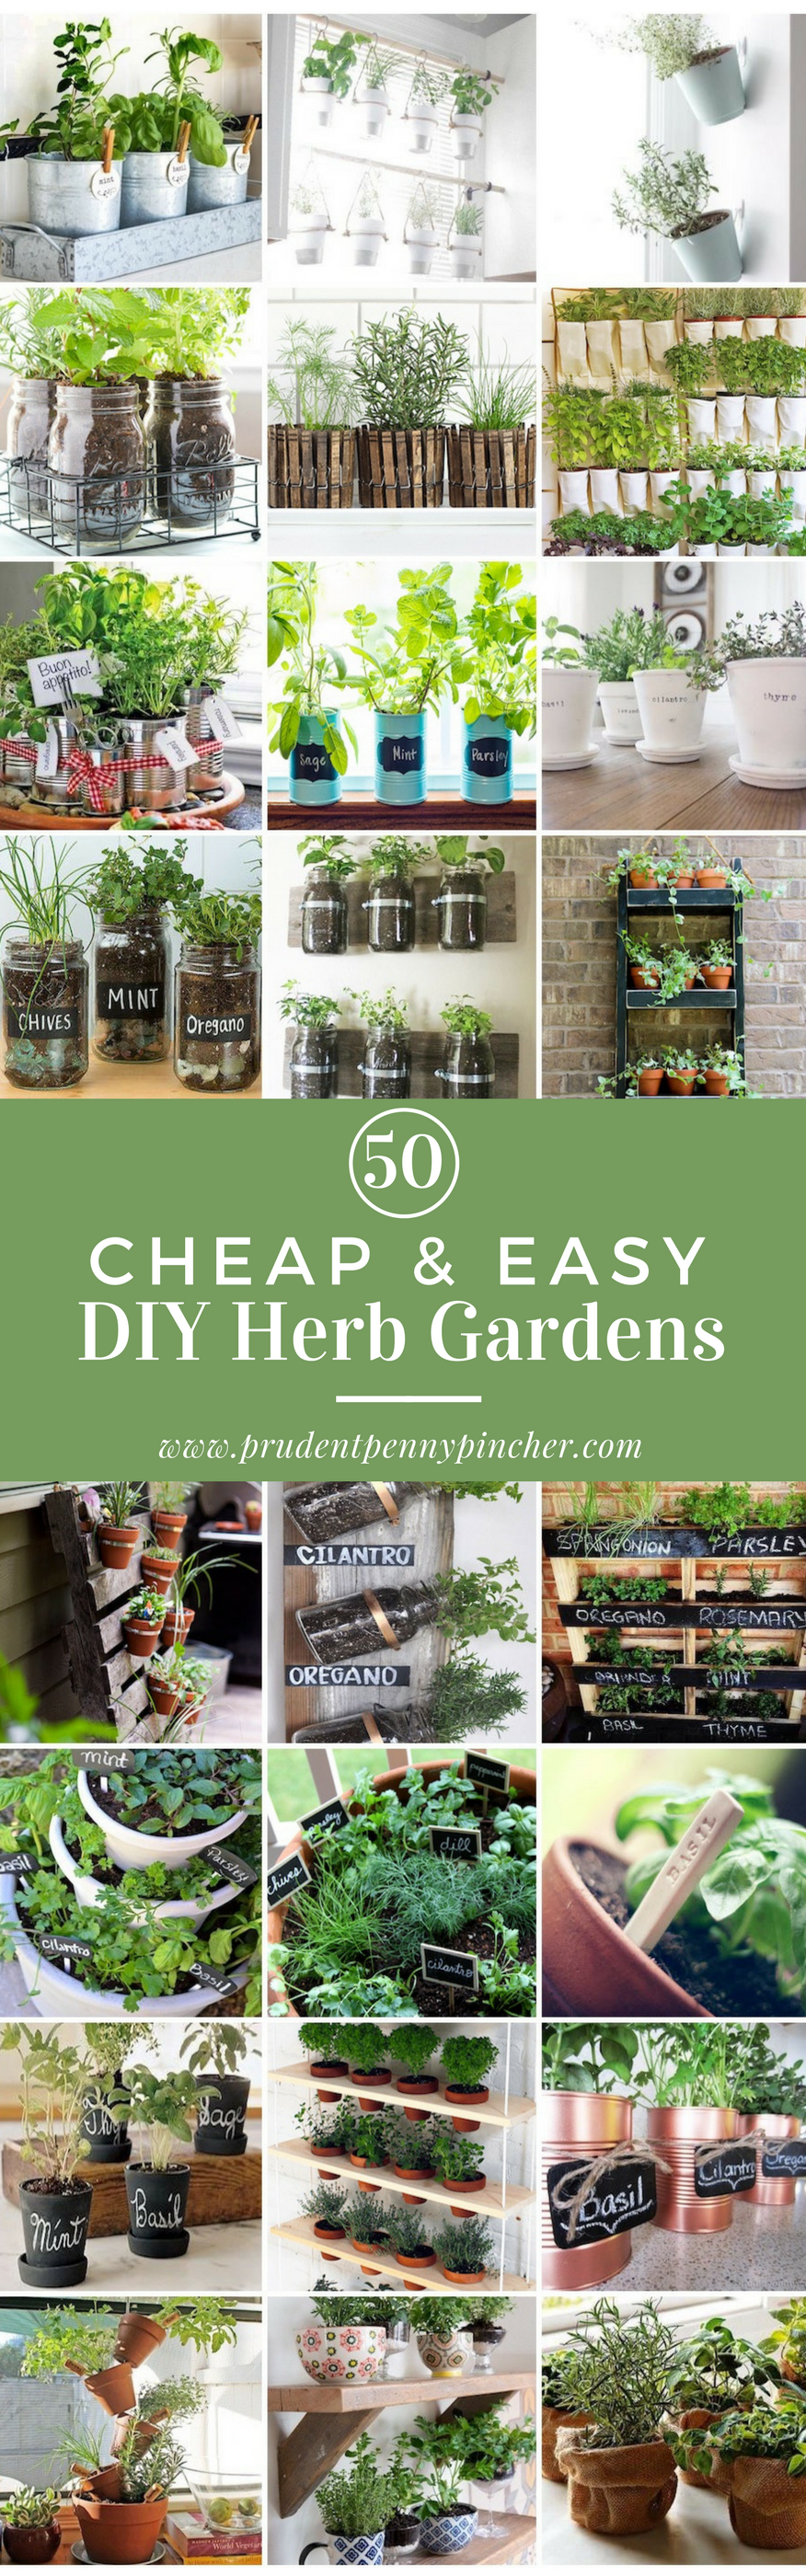 50 cheap and easy diy herb garden ideas | herbs garden, garden